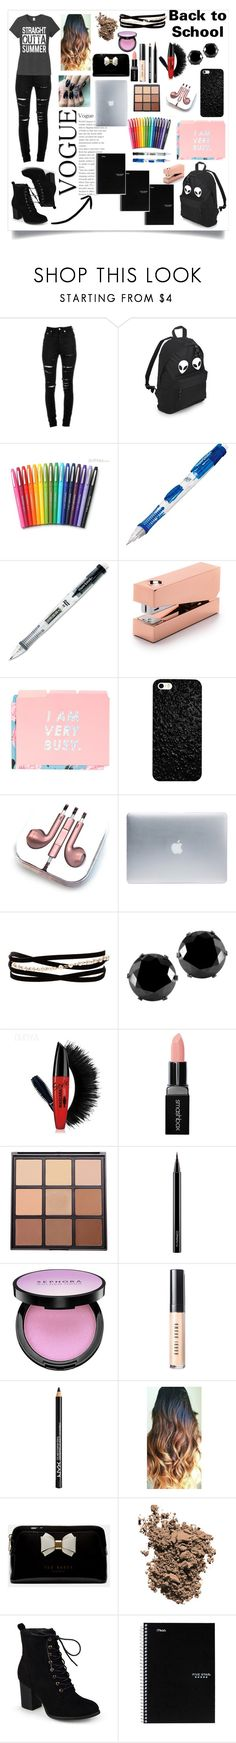 """""""Back to school"""" by kitty-cat130 ❤ liked on Polyvore featuring Yves Saint Laurent, Paper Mate, Tom Dixon, ban.do, PhunkeeTree, Incase, Kenneth Jay Lane, West Coast Jewelry, Smashbox and Morphe"""